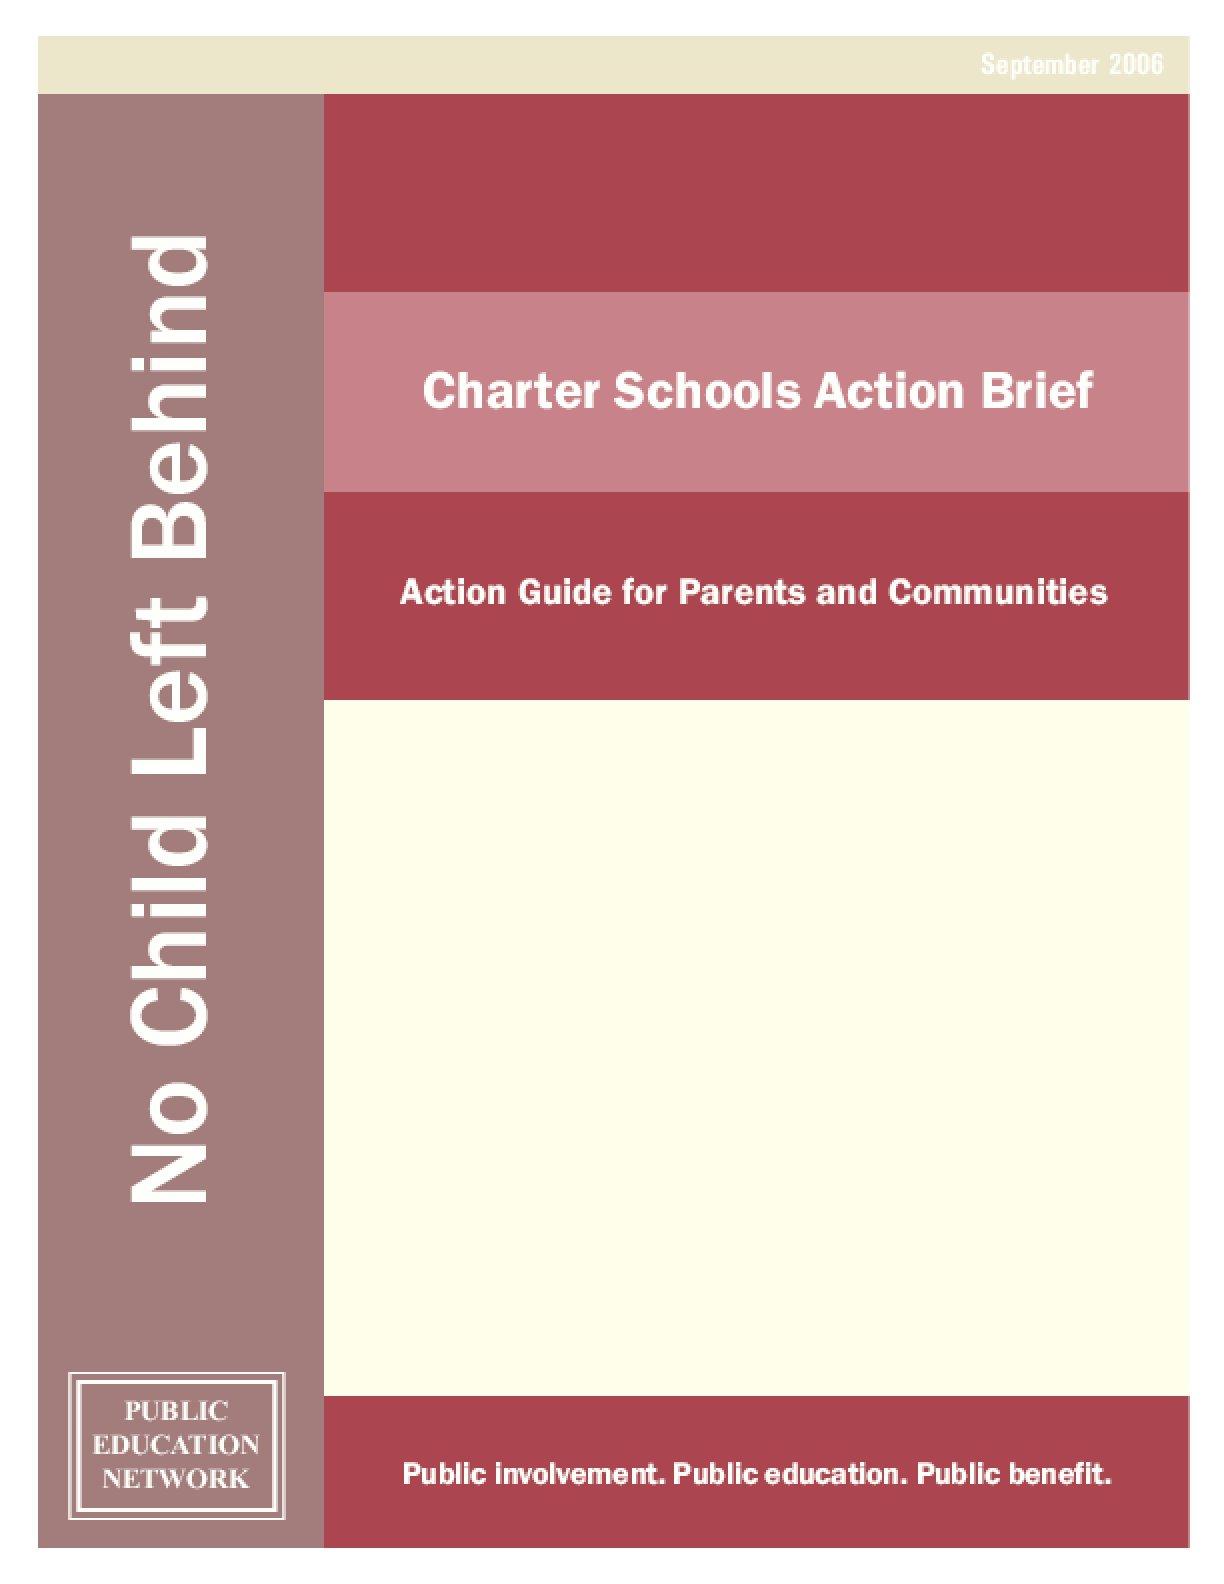 Charter Schools Action Brief: Action Guide for Parents and Communities